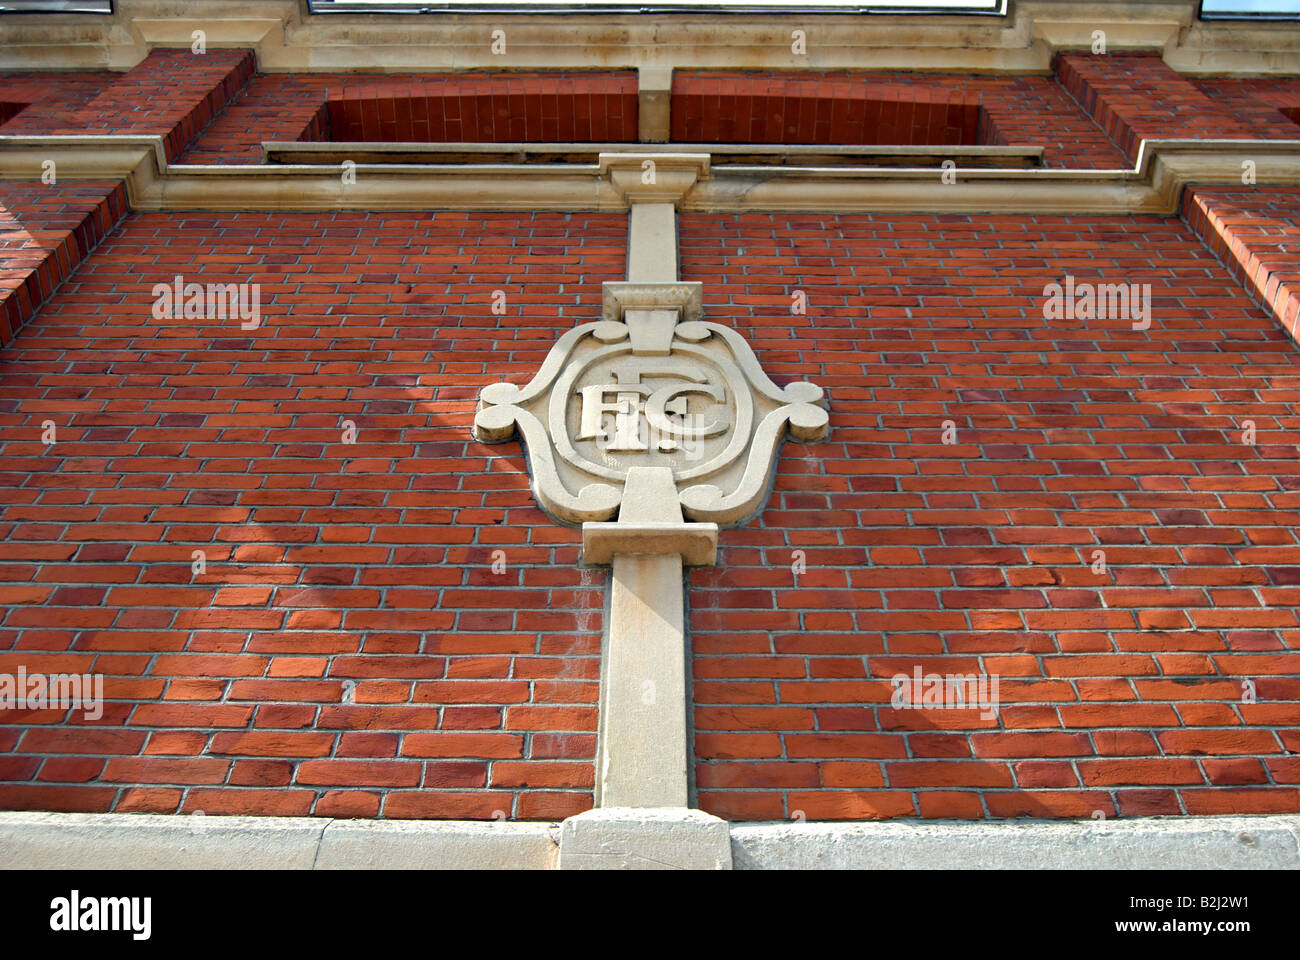 crest of fulham football club on the exterior of the johnny haynes stand at craven cottage, southwest london, england - Stock Image